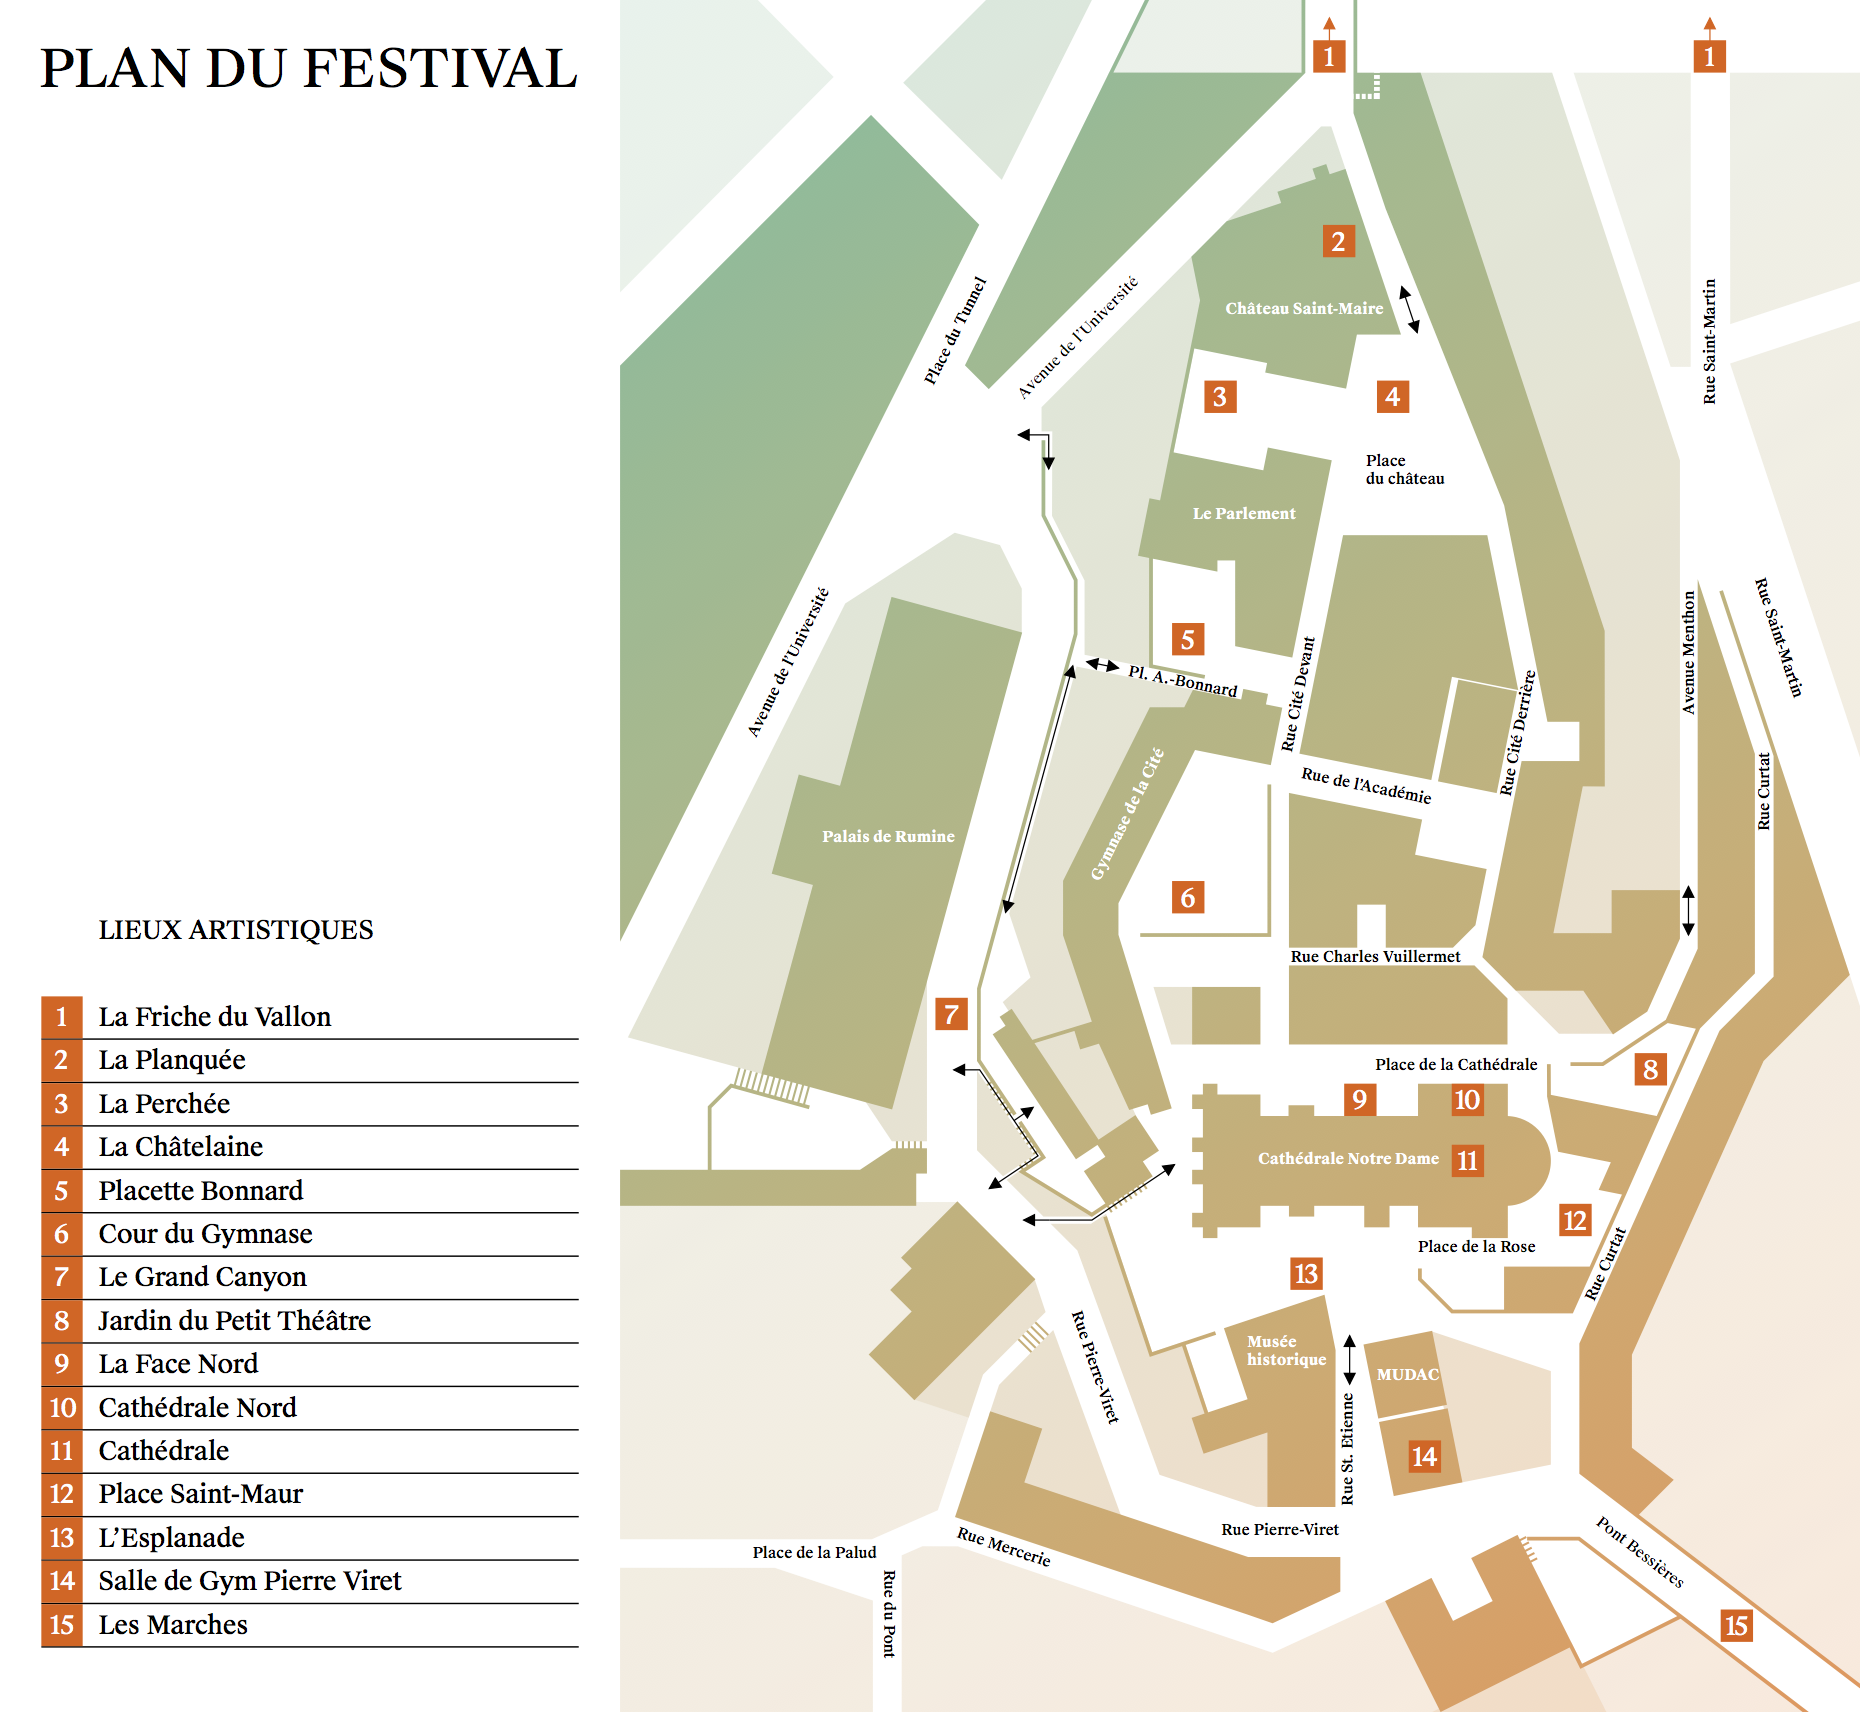 Plan d'implantation du Festival de la Cité 2018